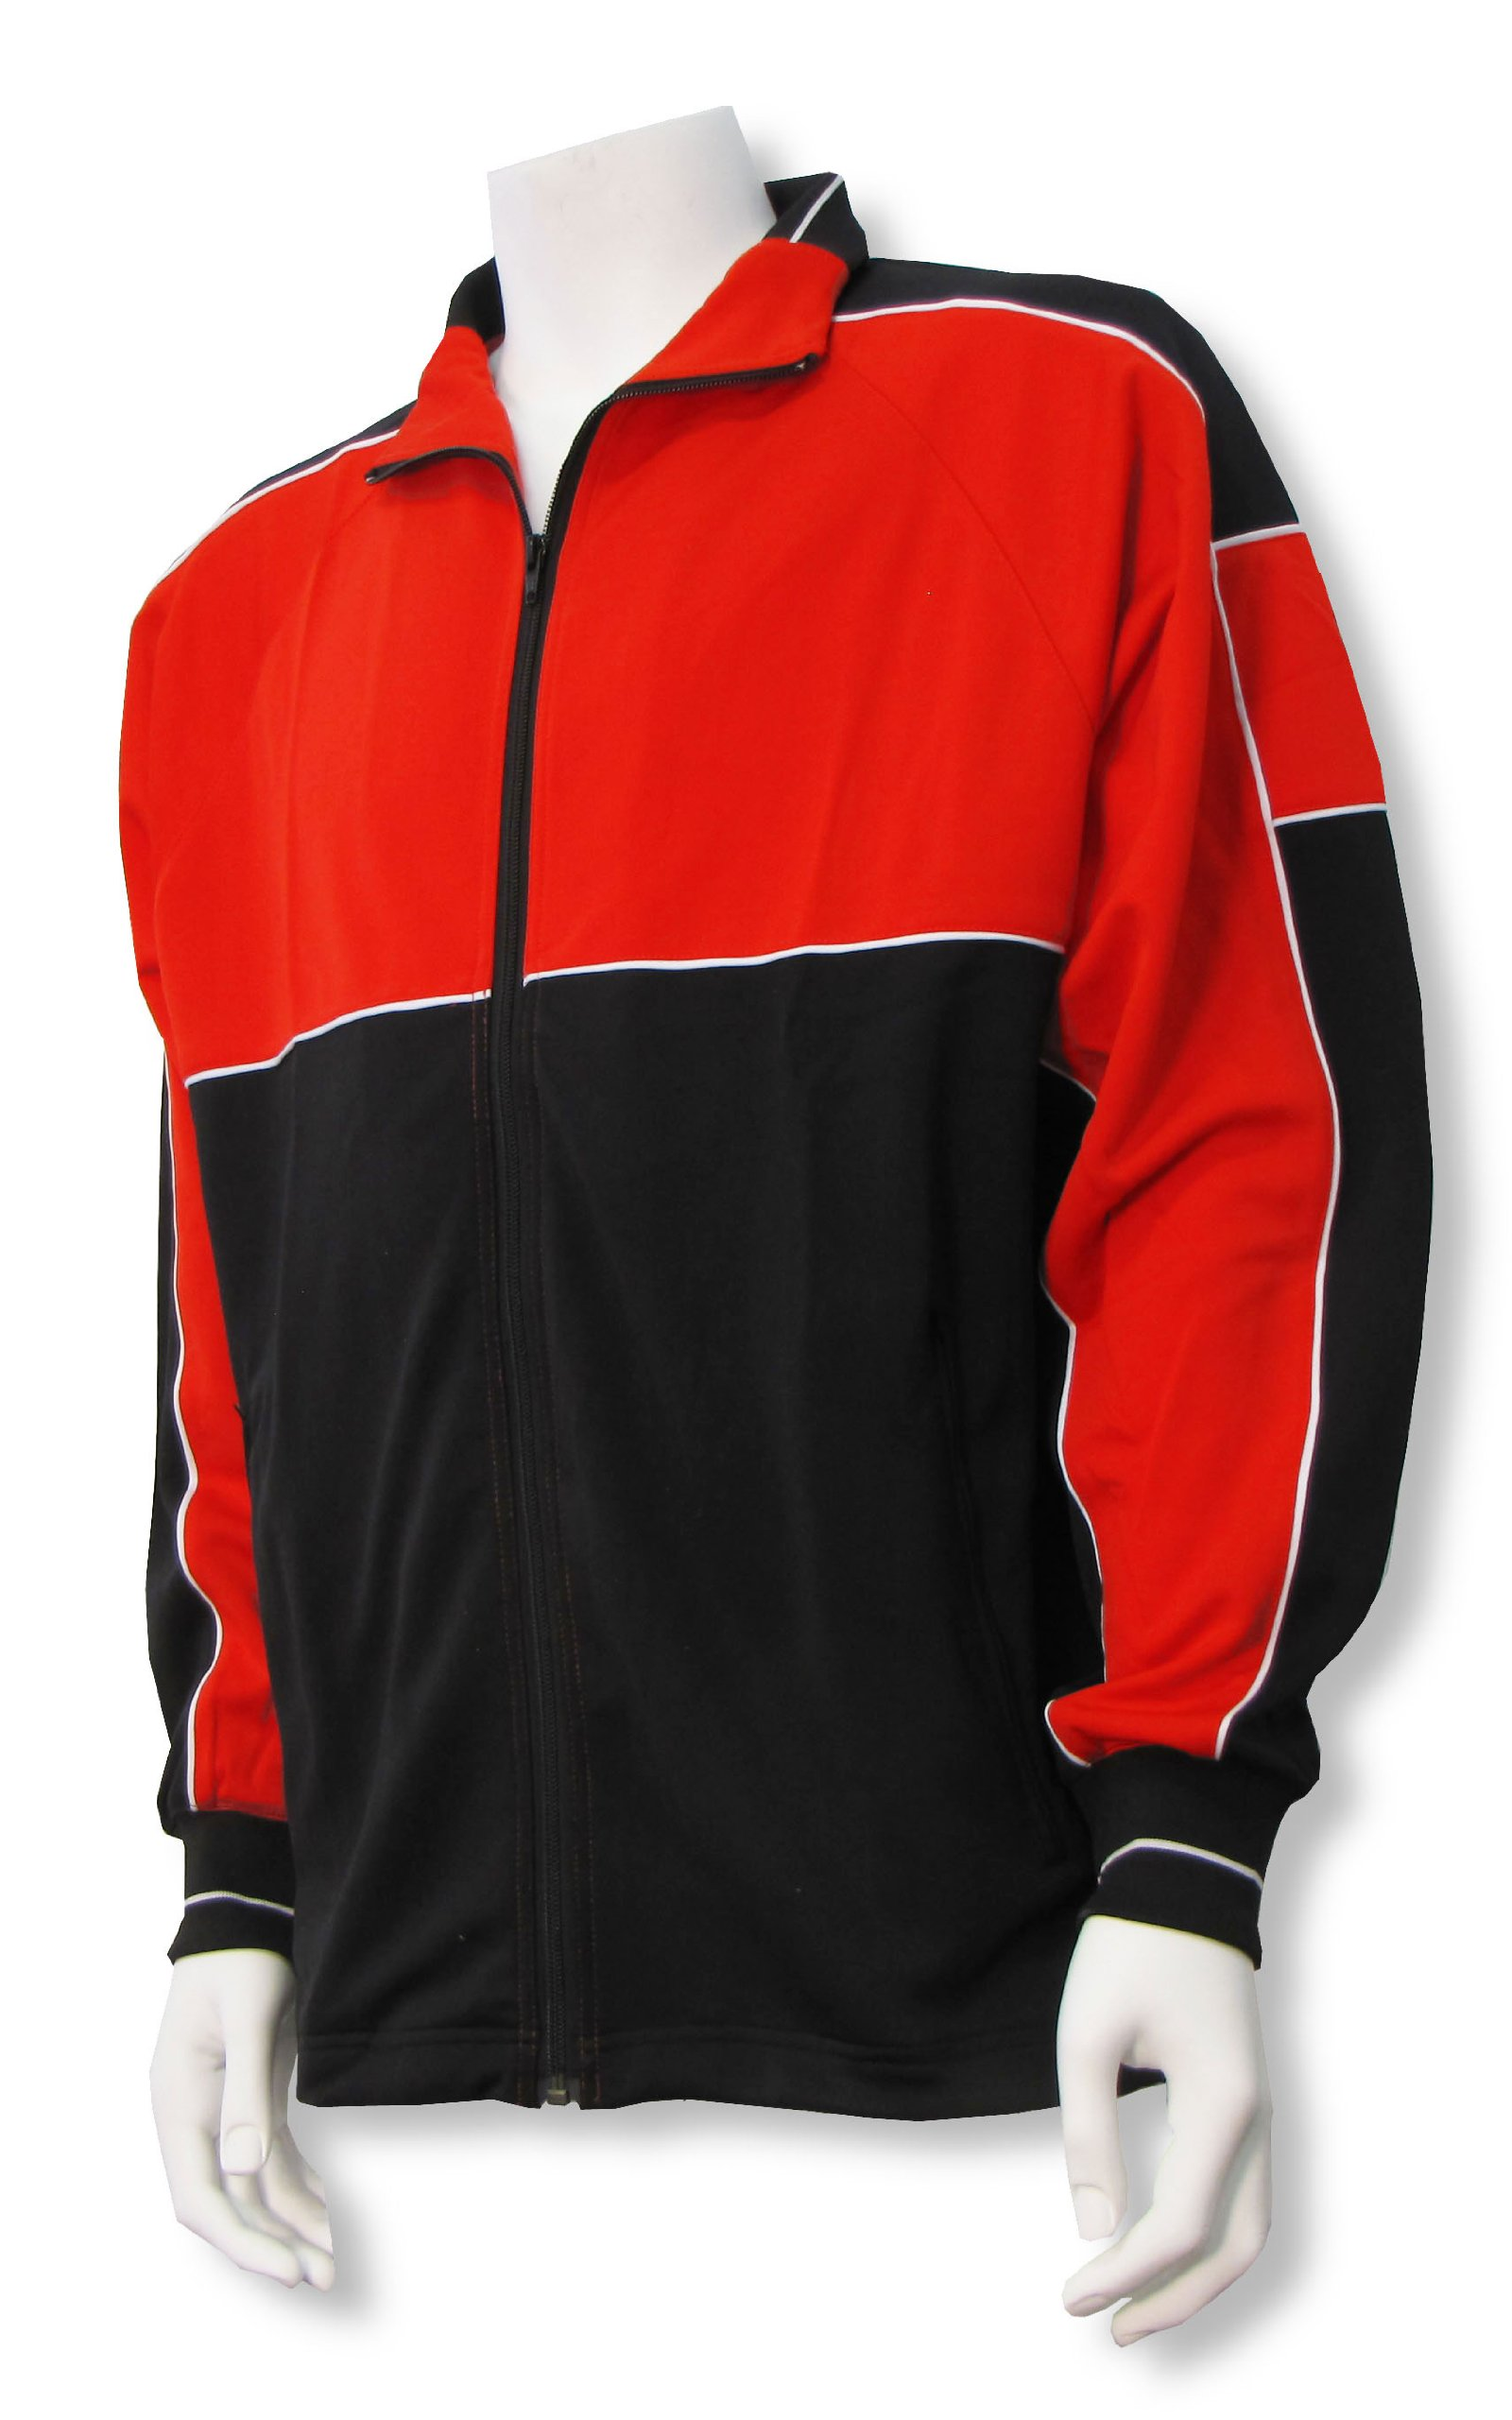 Code Four Athletics Sparta soccer poly-knit warmup jacket - size Youth S - Red/Black by Code Four Athletics